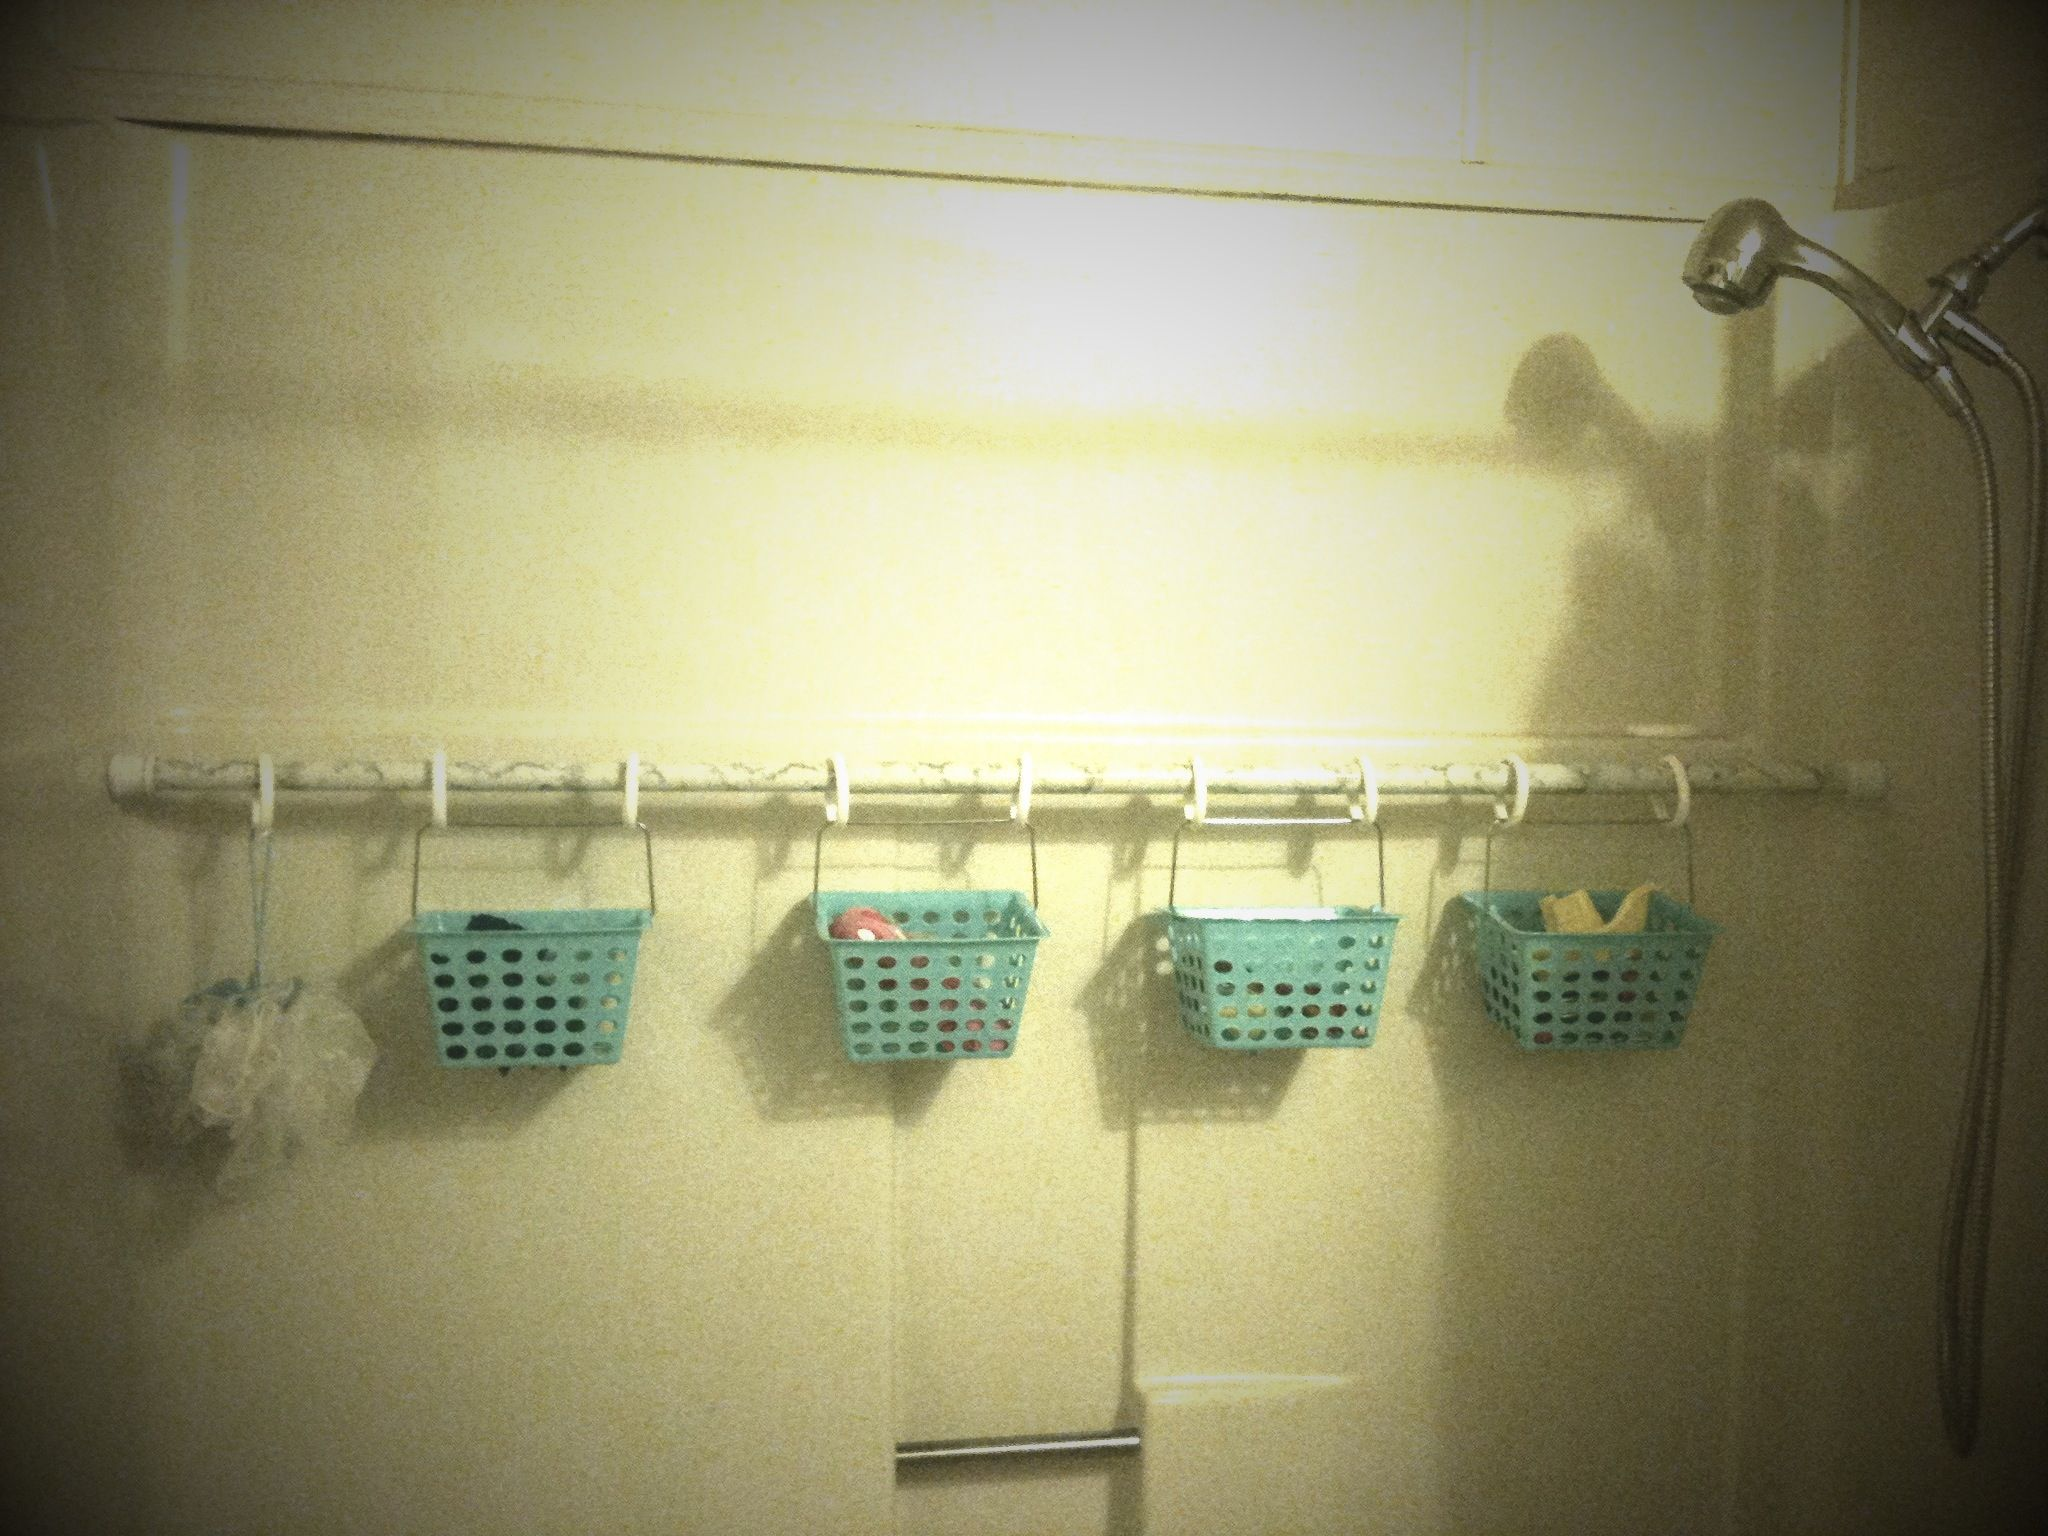 Shower Curtain Rod And Hooks From Thrift Store With Little Bins The Dollar Tree Total Spent 5 Bucks